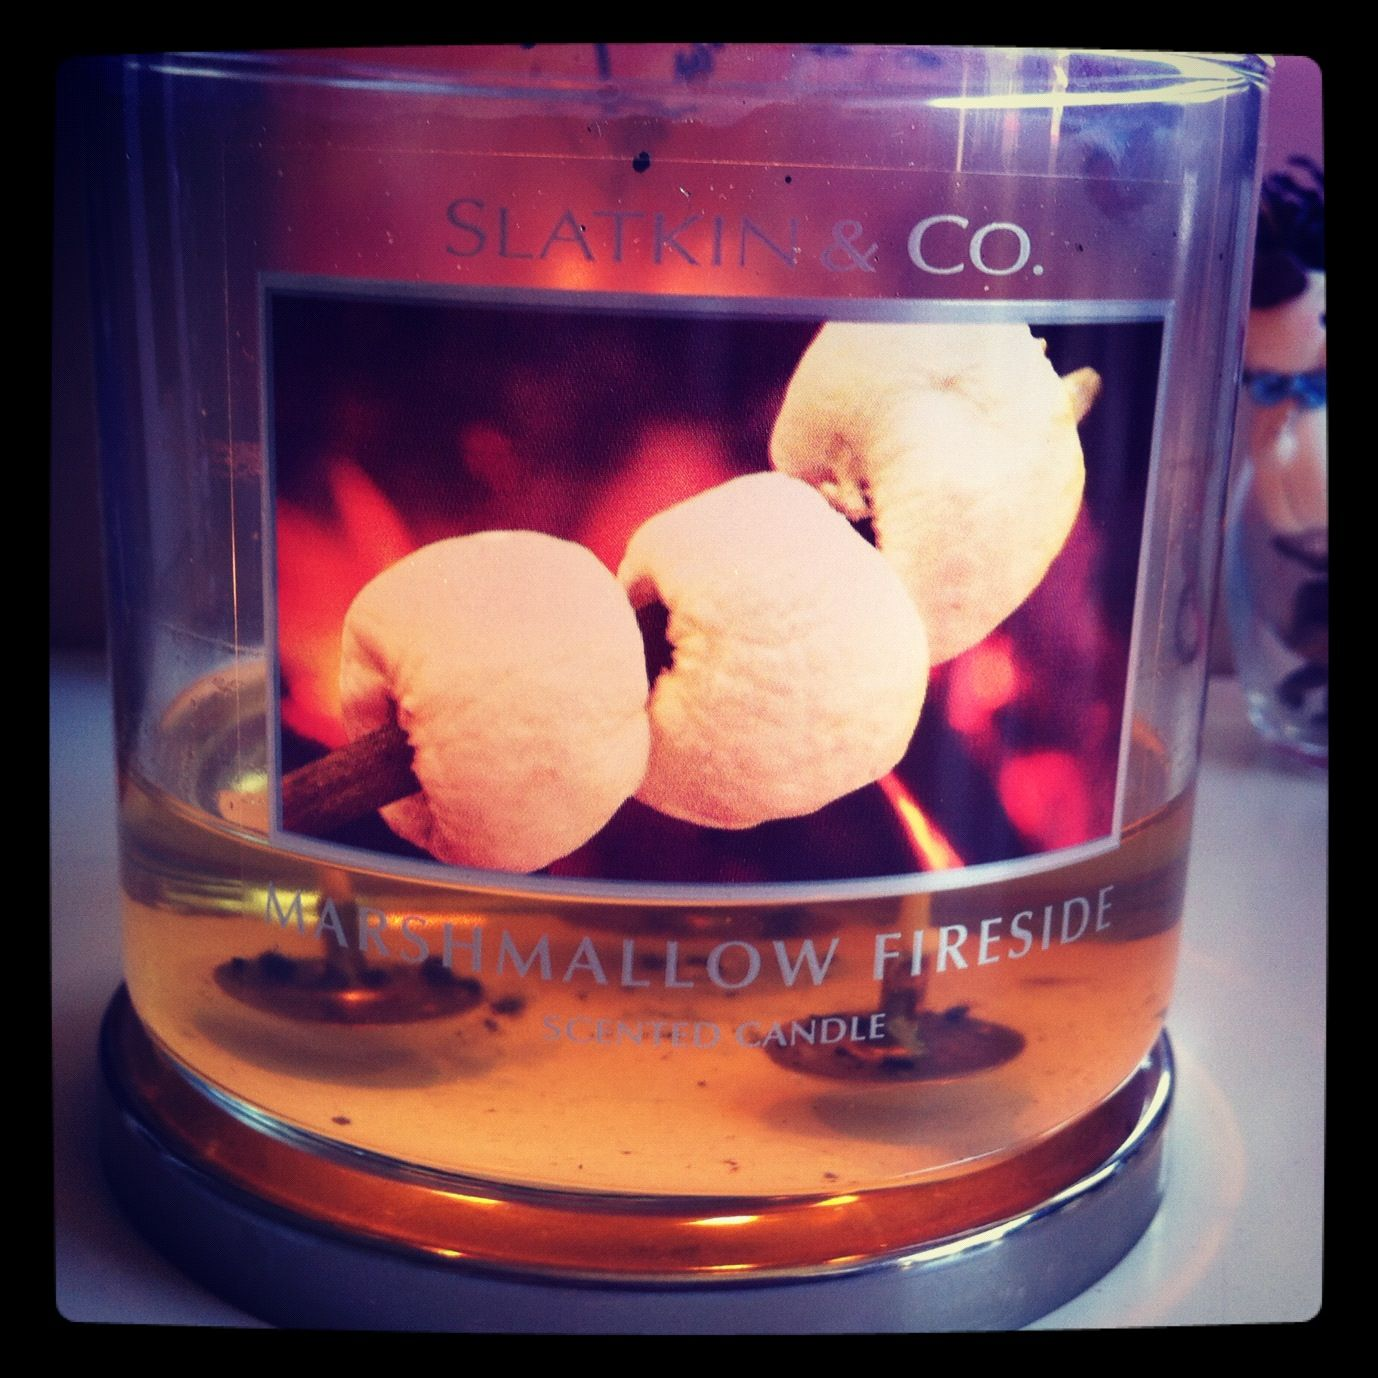 Love this fall smell from bath and body!